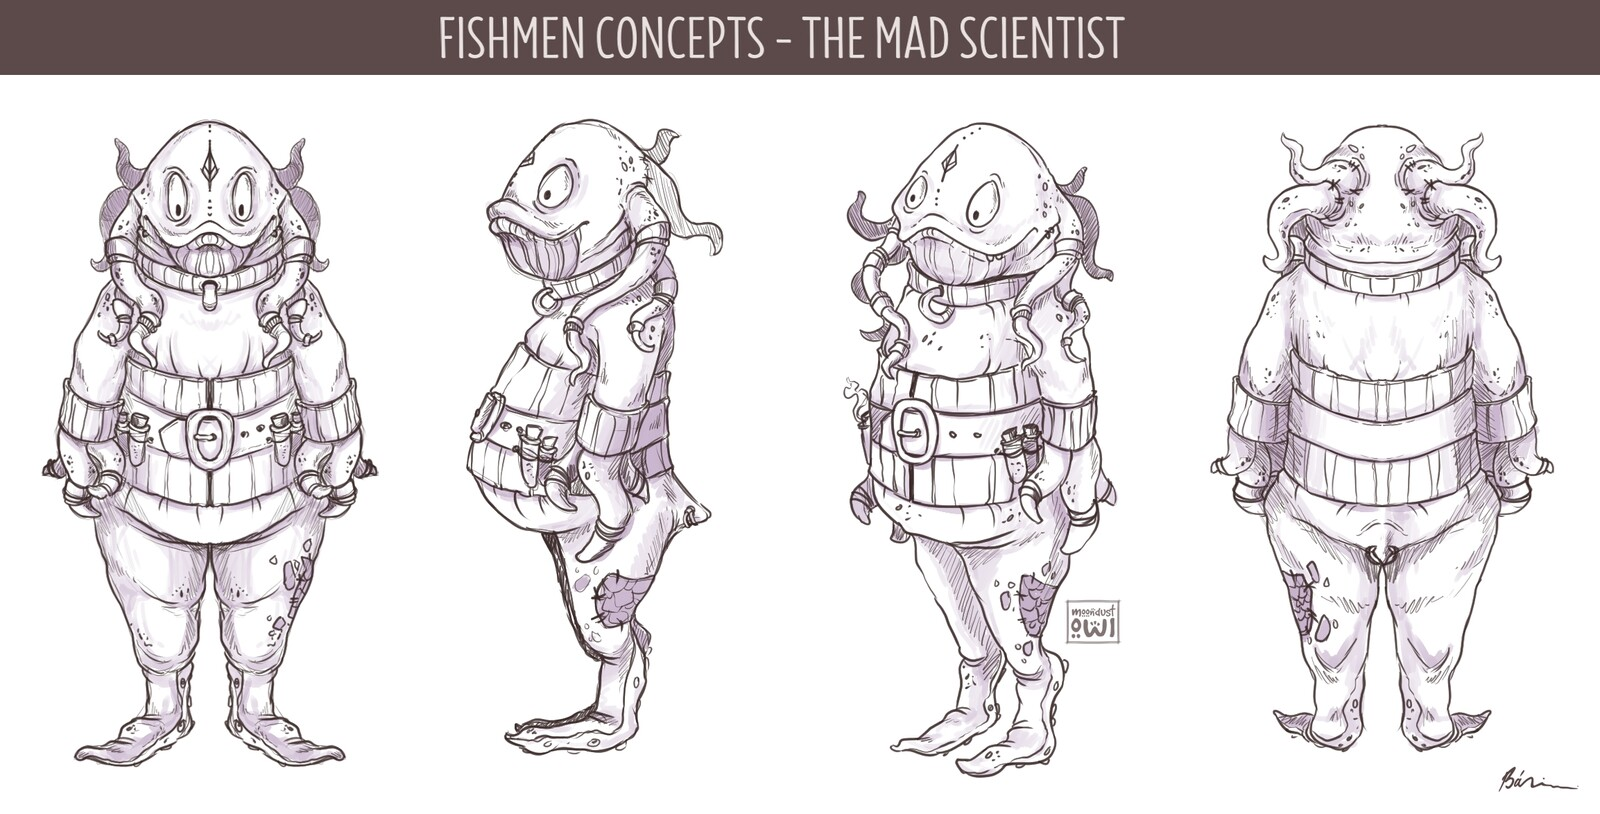 The mad scientist - mutated fishman concept with full turnaround - sketch